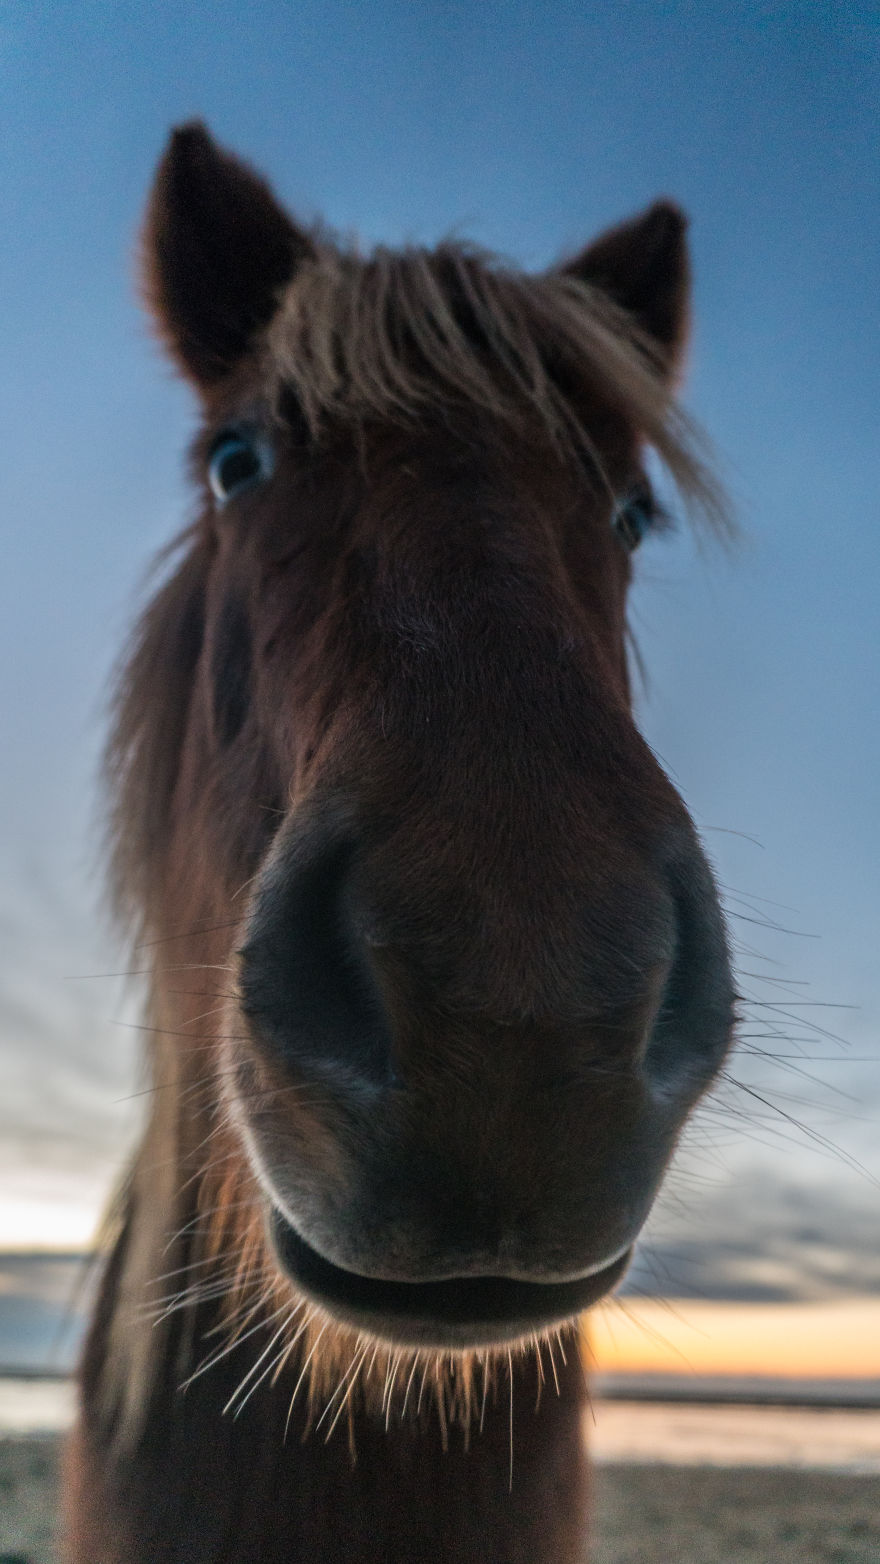 Silly Icelandic Horse